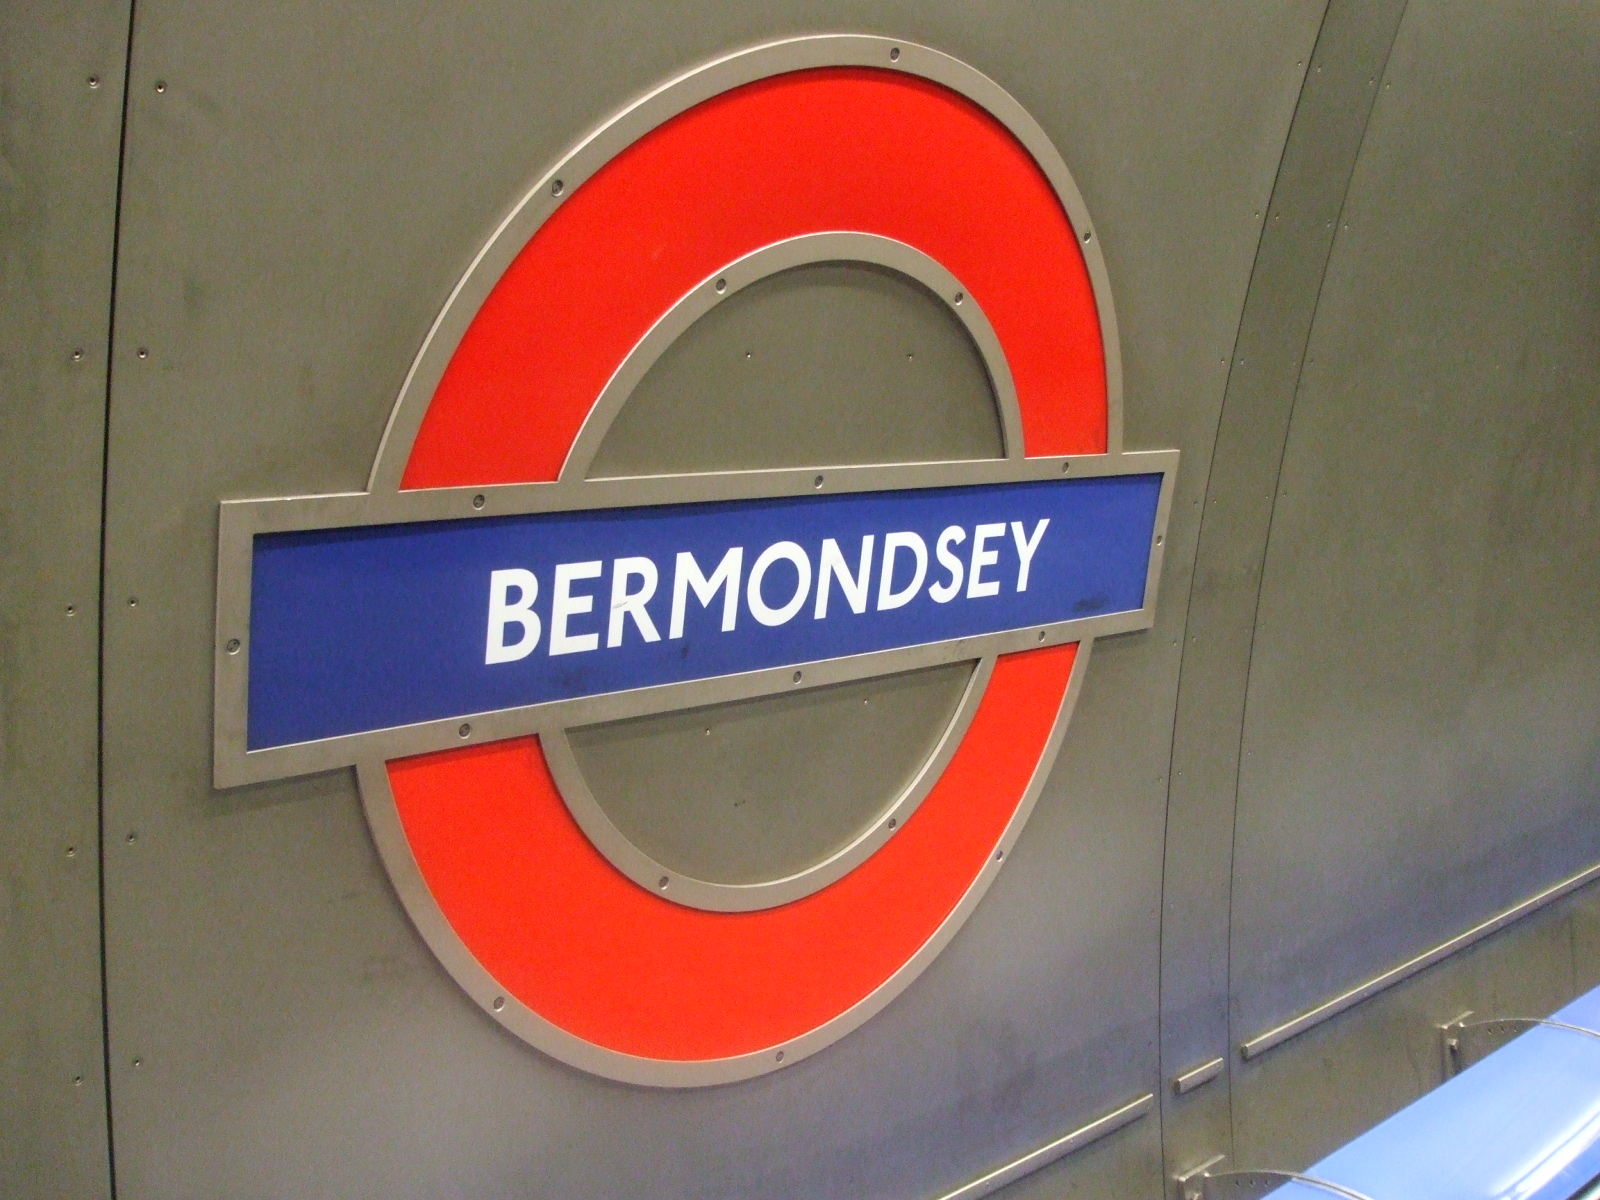 Free Download: SE1DavidE – BermondseyBeats Vol.1 (2012)